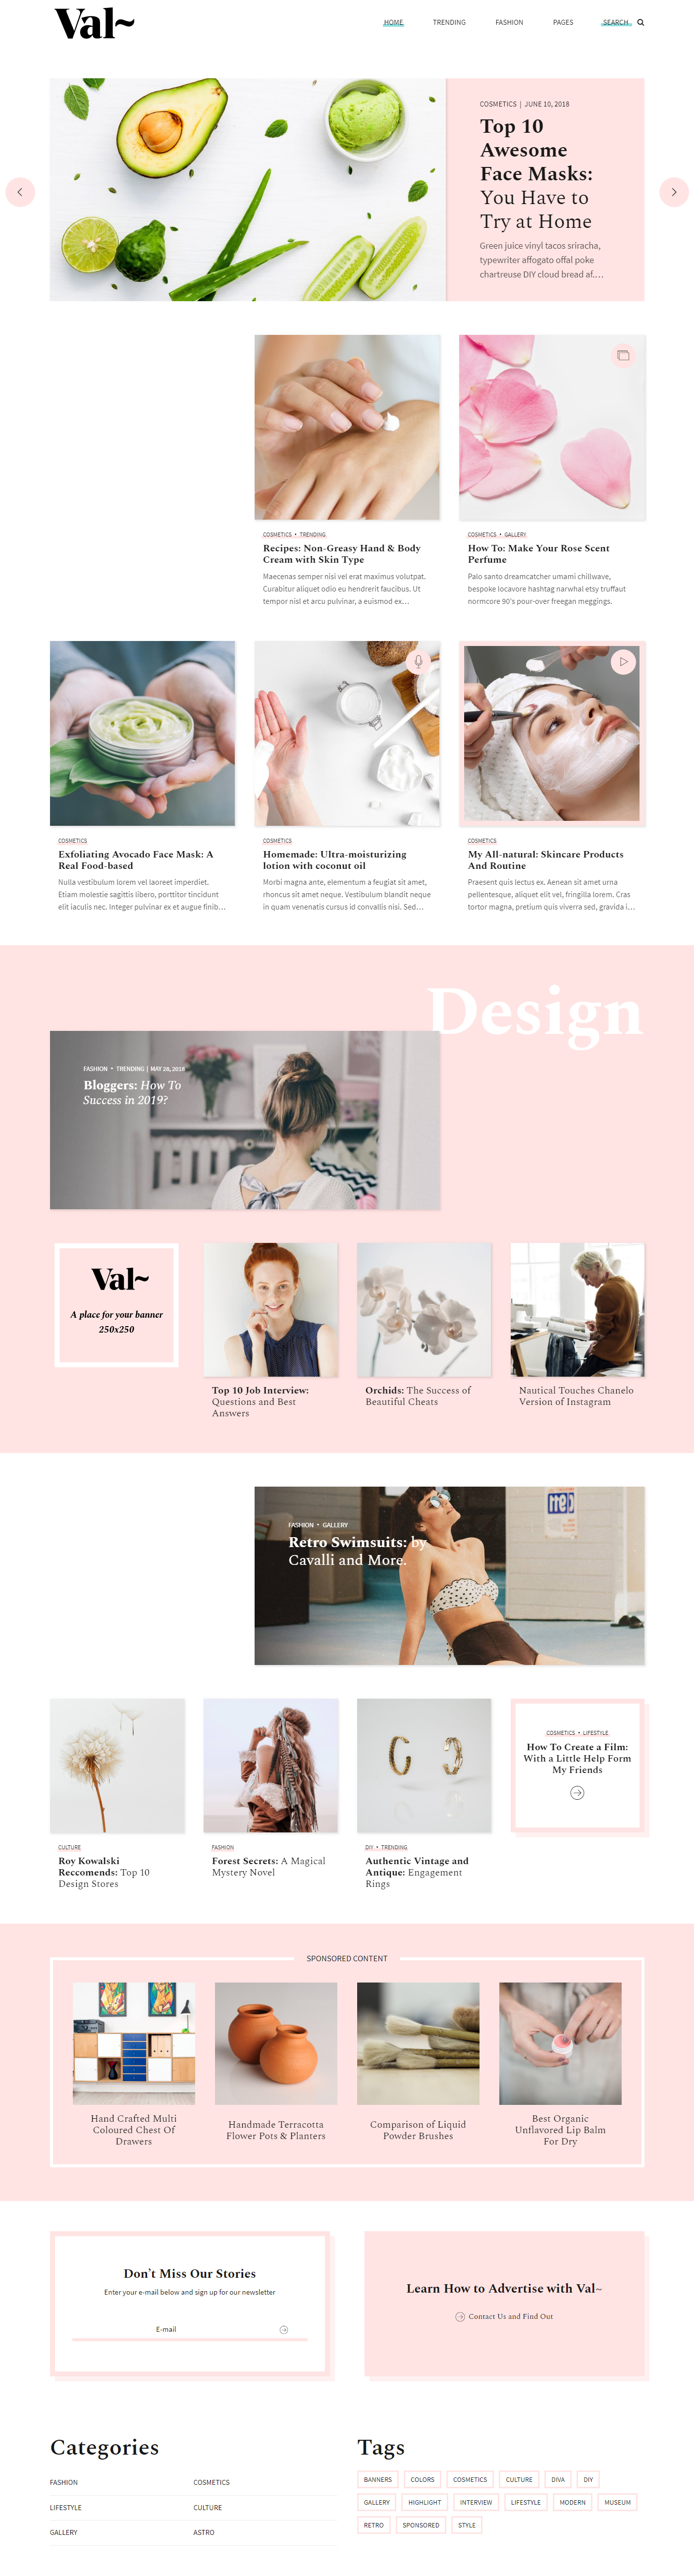 http://val.bold-themes.com/wp-content/uploads/2018/10/Pink-Demo-Boxed-Slider.jpg